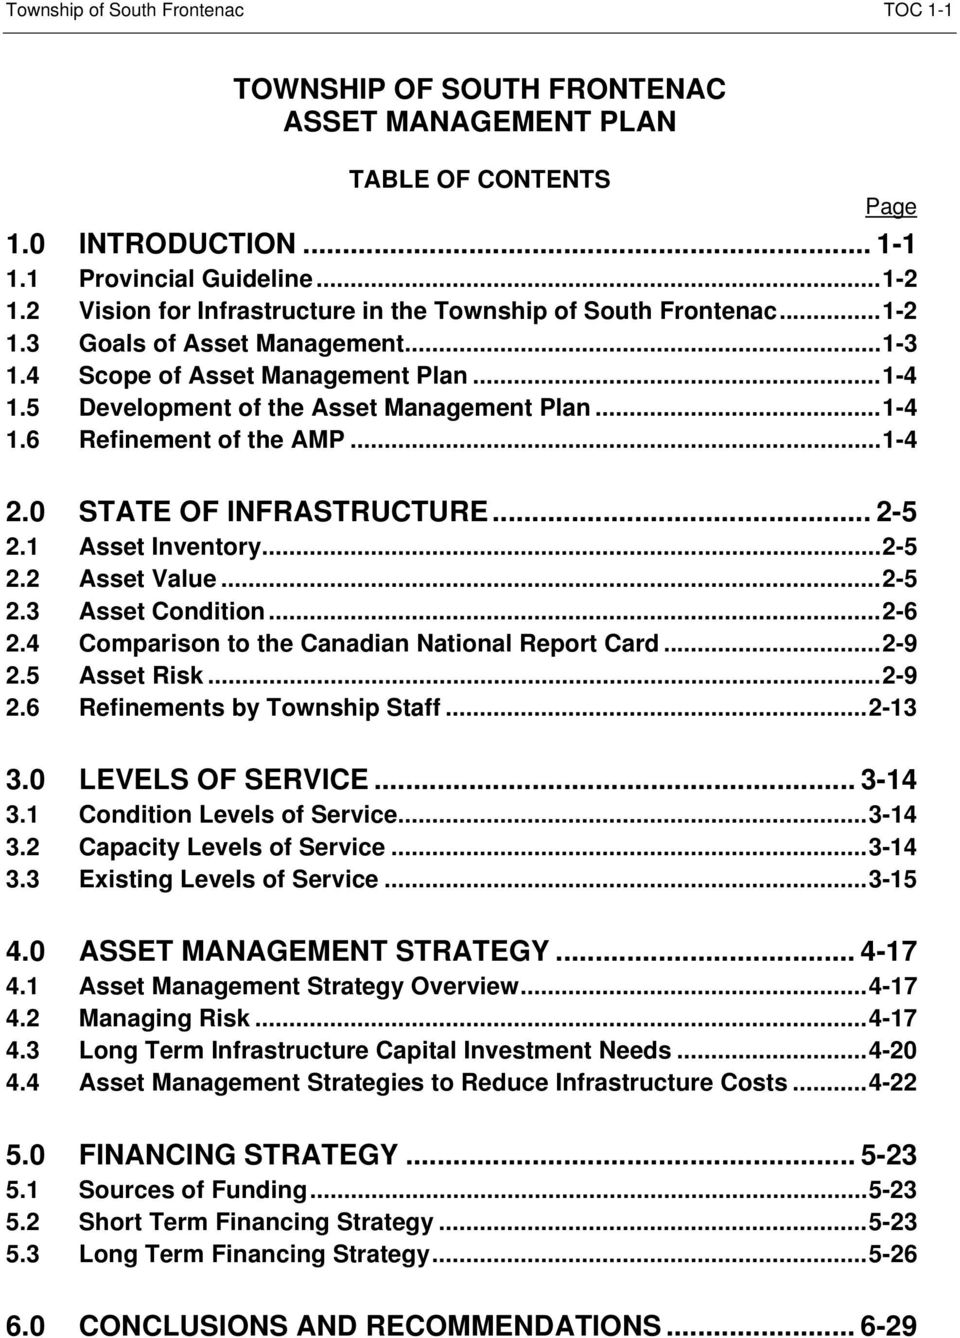 0 STATE OF INFRASTRUCTURE... 2-5 2.1 Asset Inventory... 2-5 2.2 Asset Value... 2-5 2.3 Asset Condition... 2-6 2.4 Comparison to the Canadian National Report Card... 2-9 2.